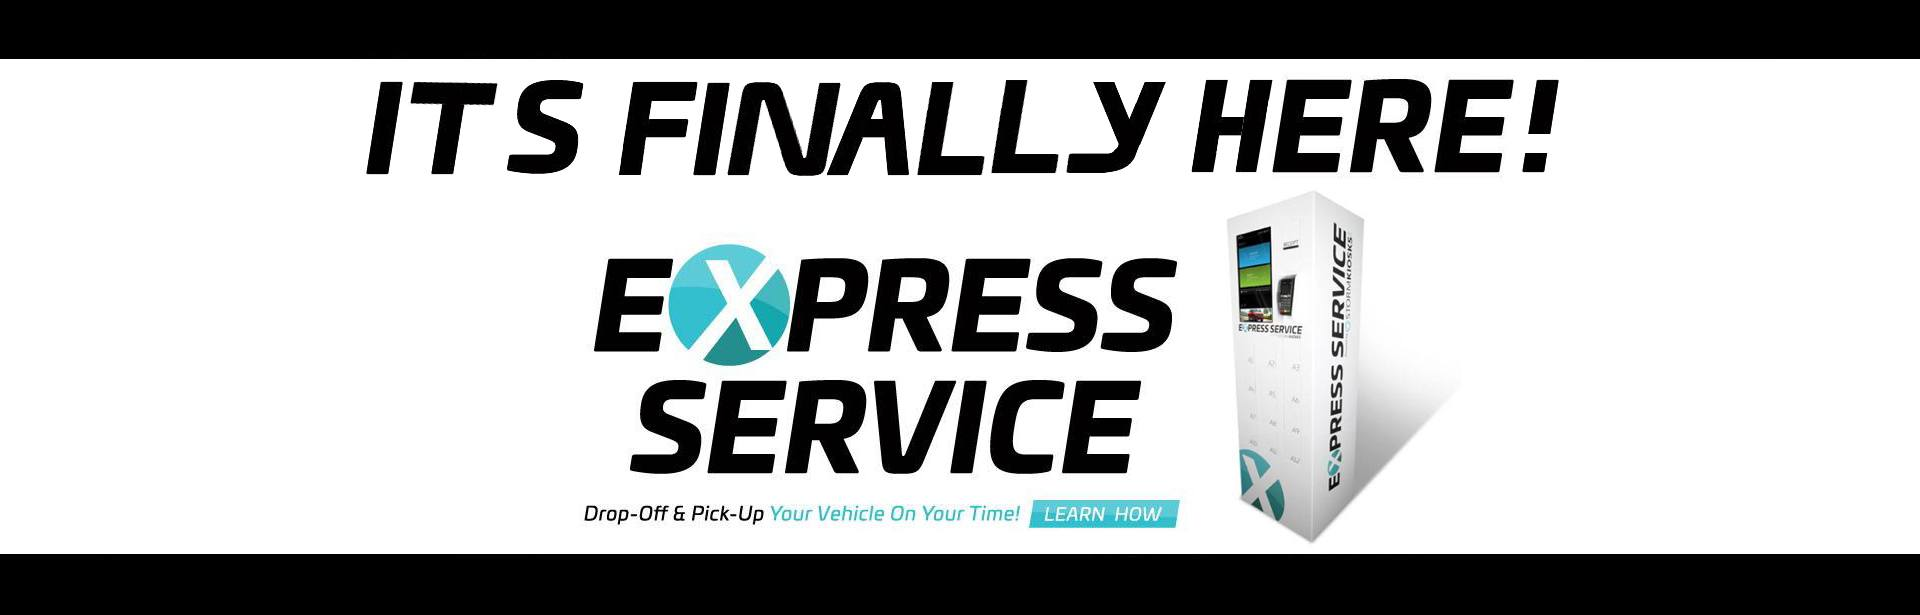 Express-Service-kiosk-is-here